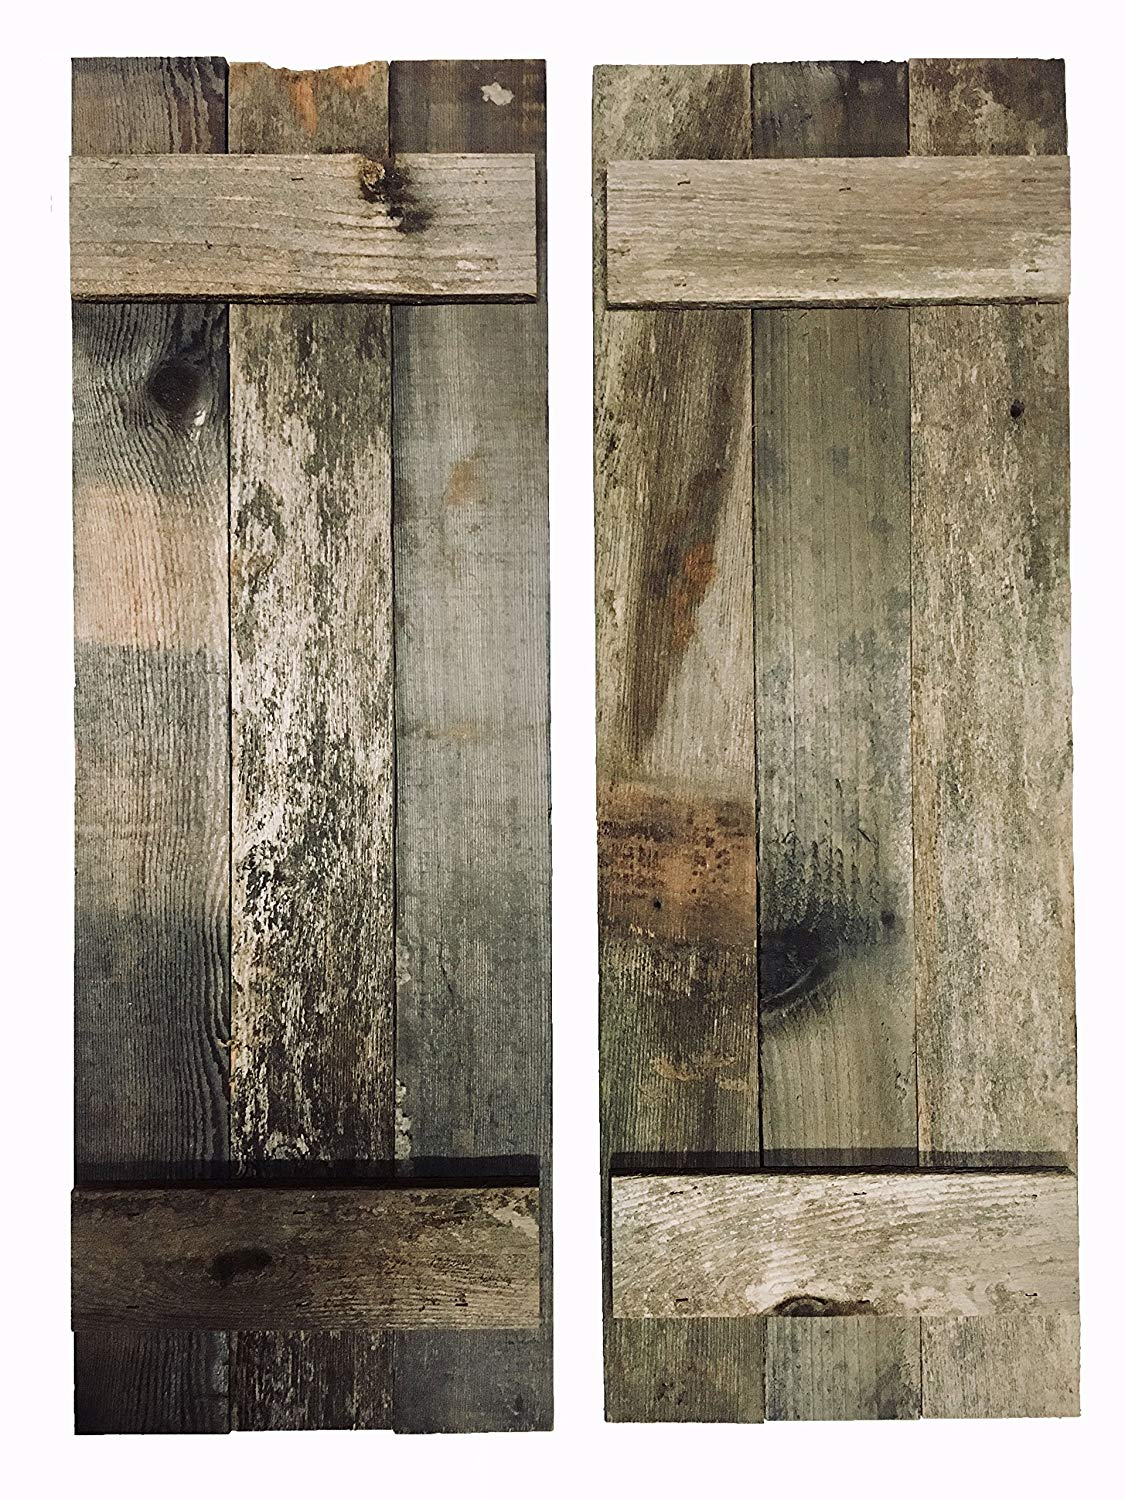 Buy Barn Wood Rustic Decorative Shutter Set Of 2 With Hinges